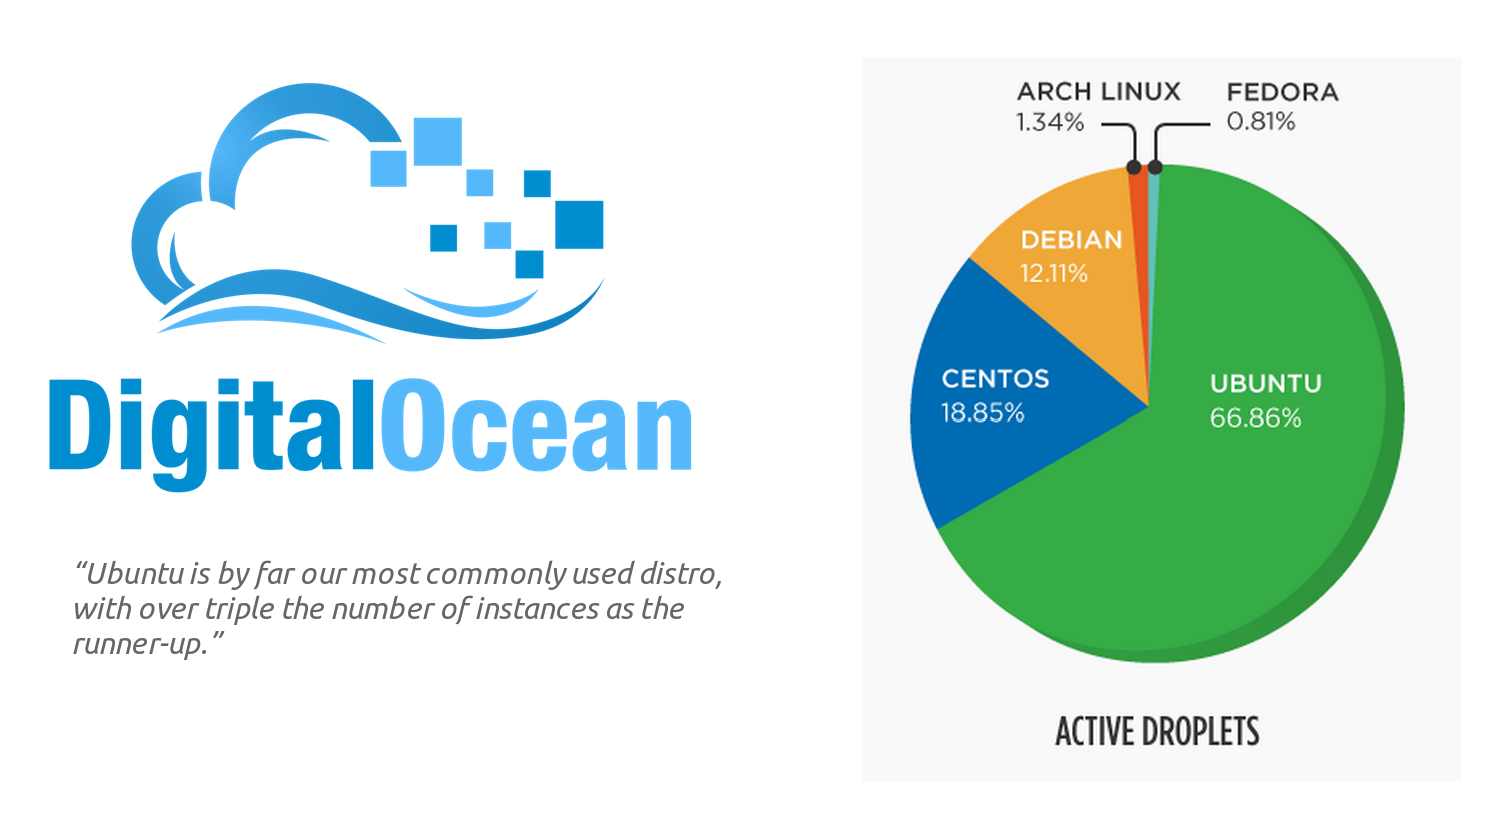 Ubuntu has 67% share of the Digital Ocean public cloud